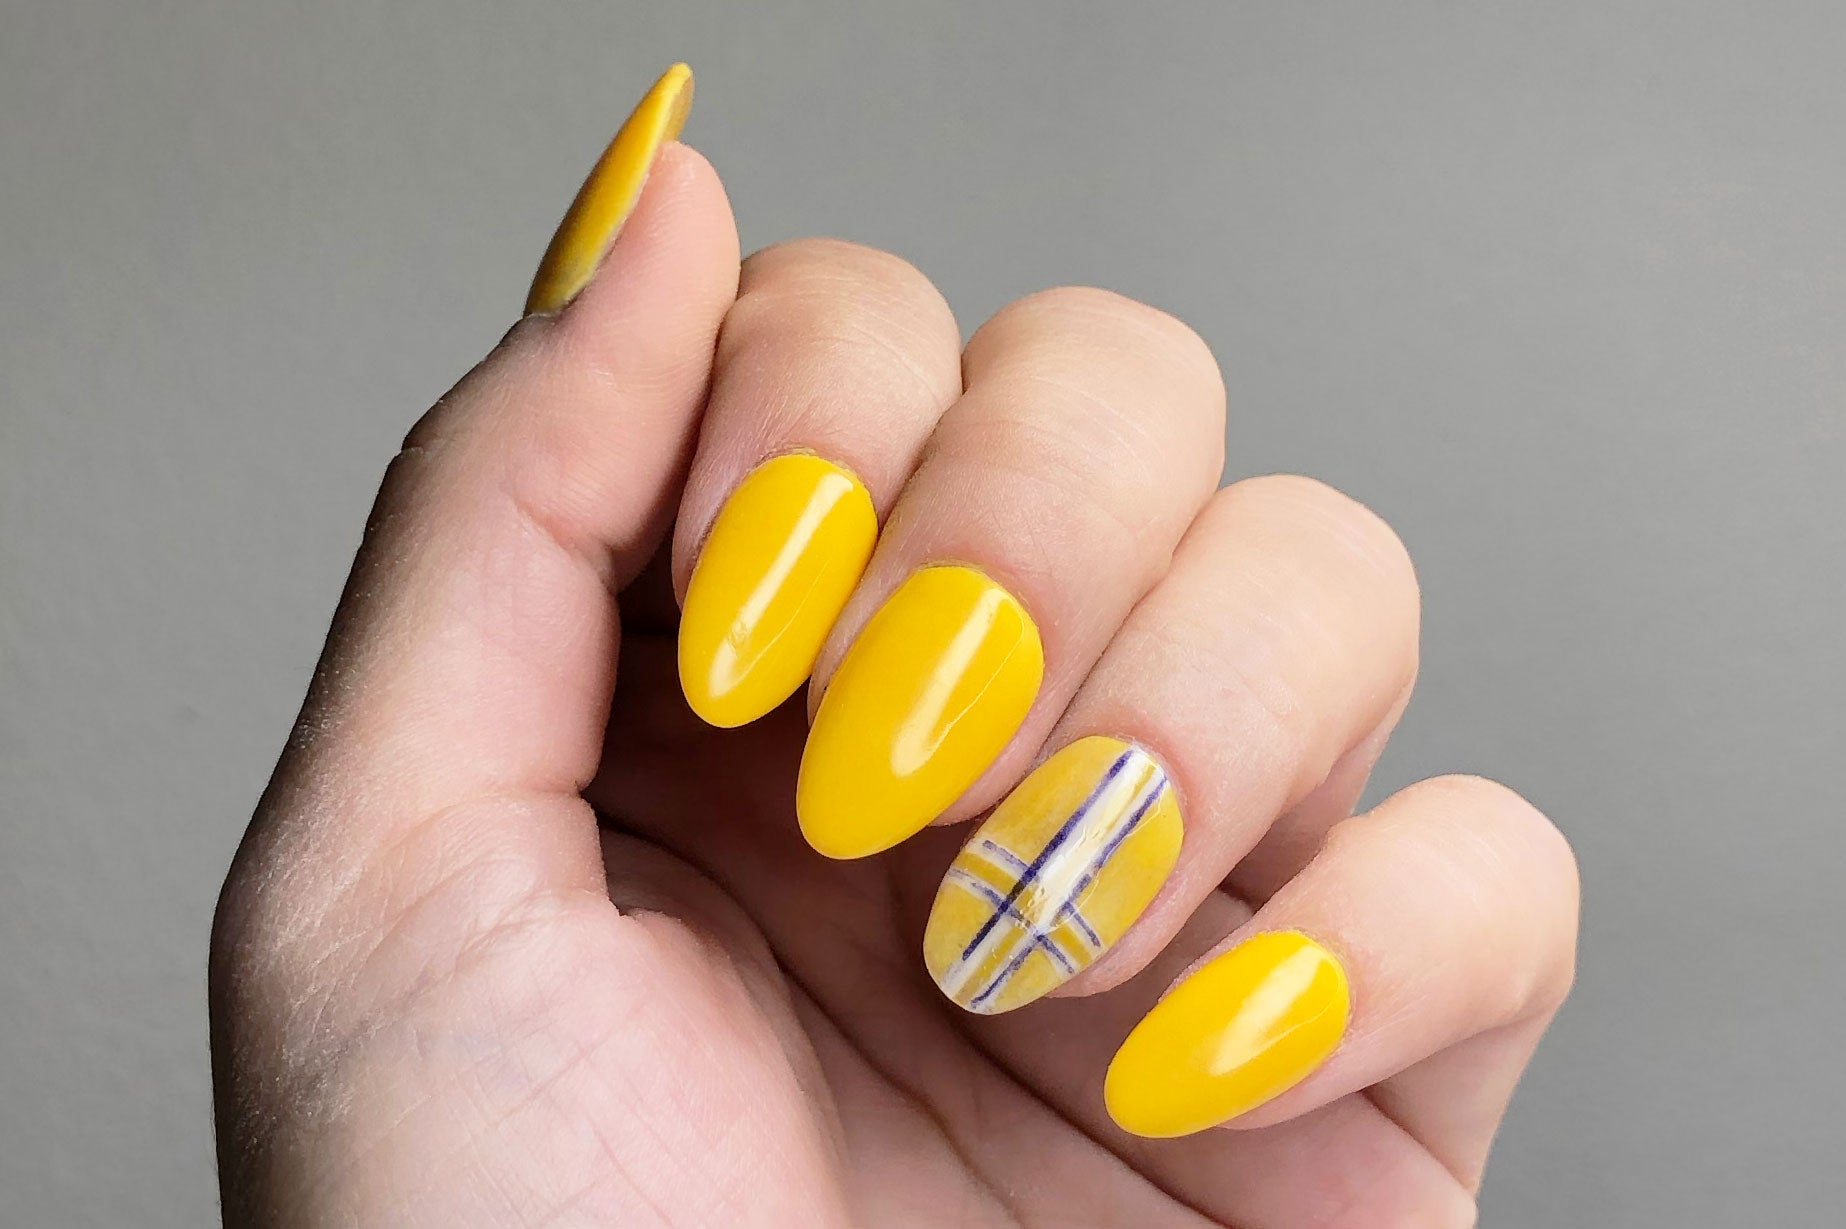 Plaid nail art inspired by Cher's jacket in Clueless  Plaid nails in yellow and blue  Plaid nail art | dip nail process